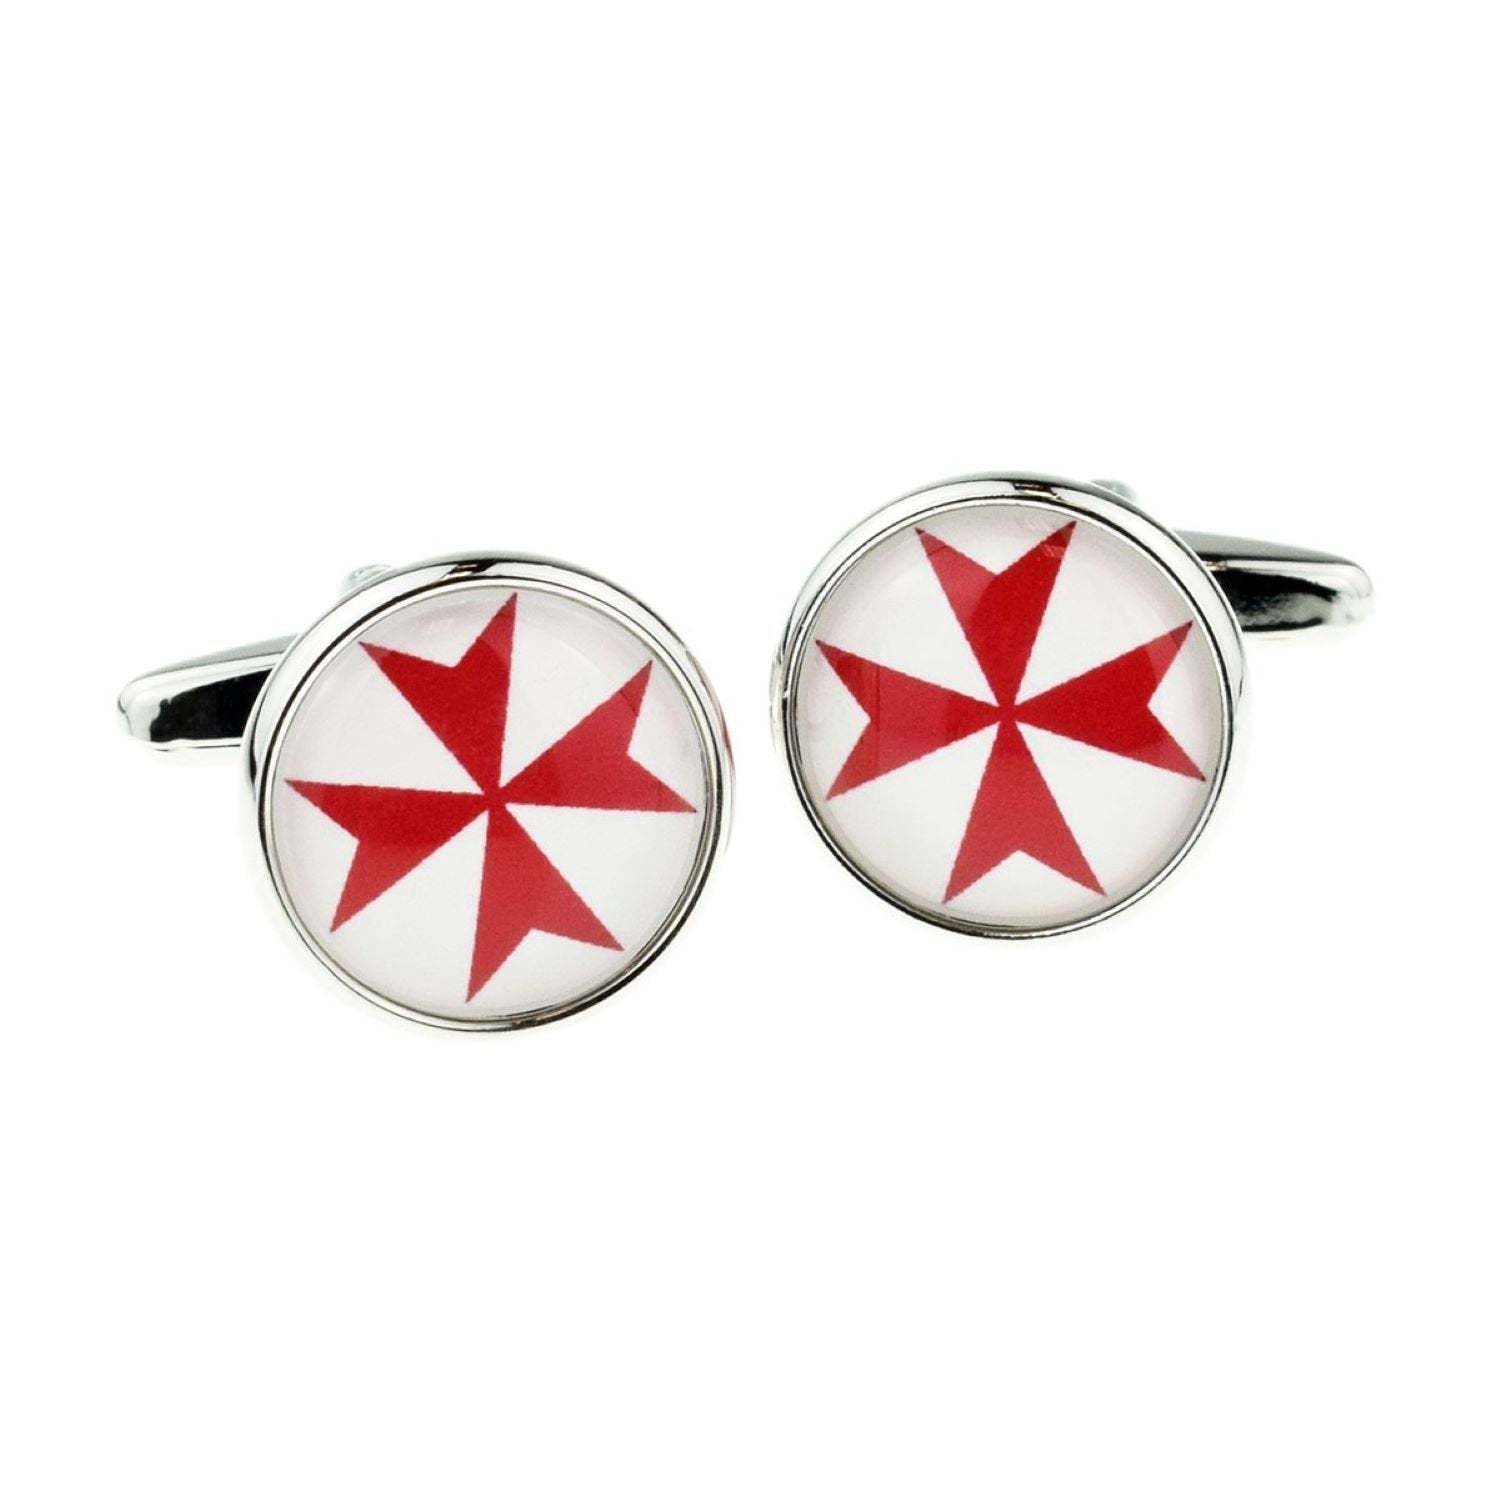 Red Maltese Cross Round Frame Cufflinks   cuff links in gift box